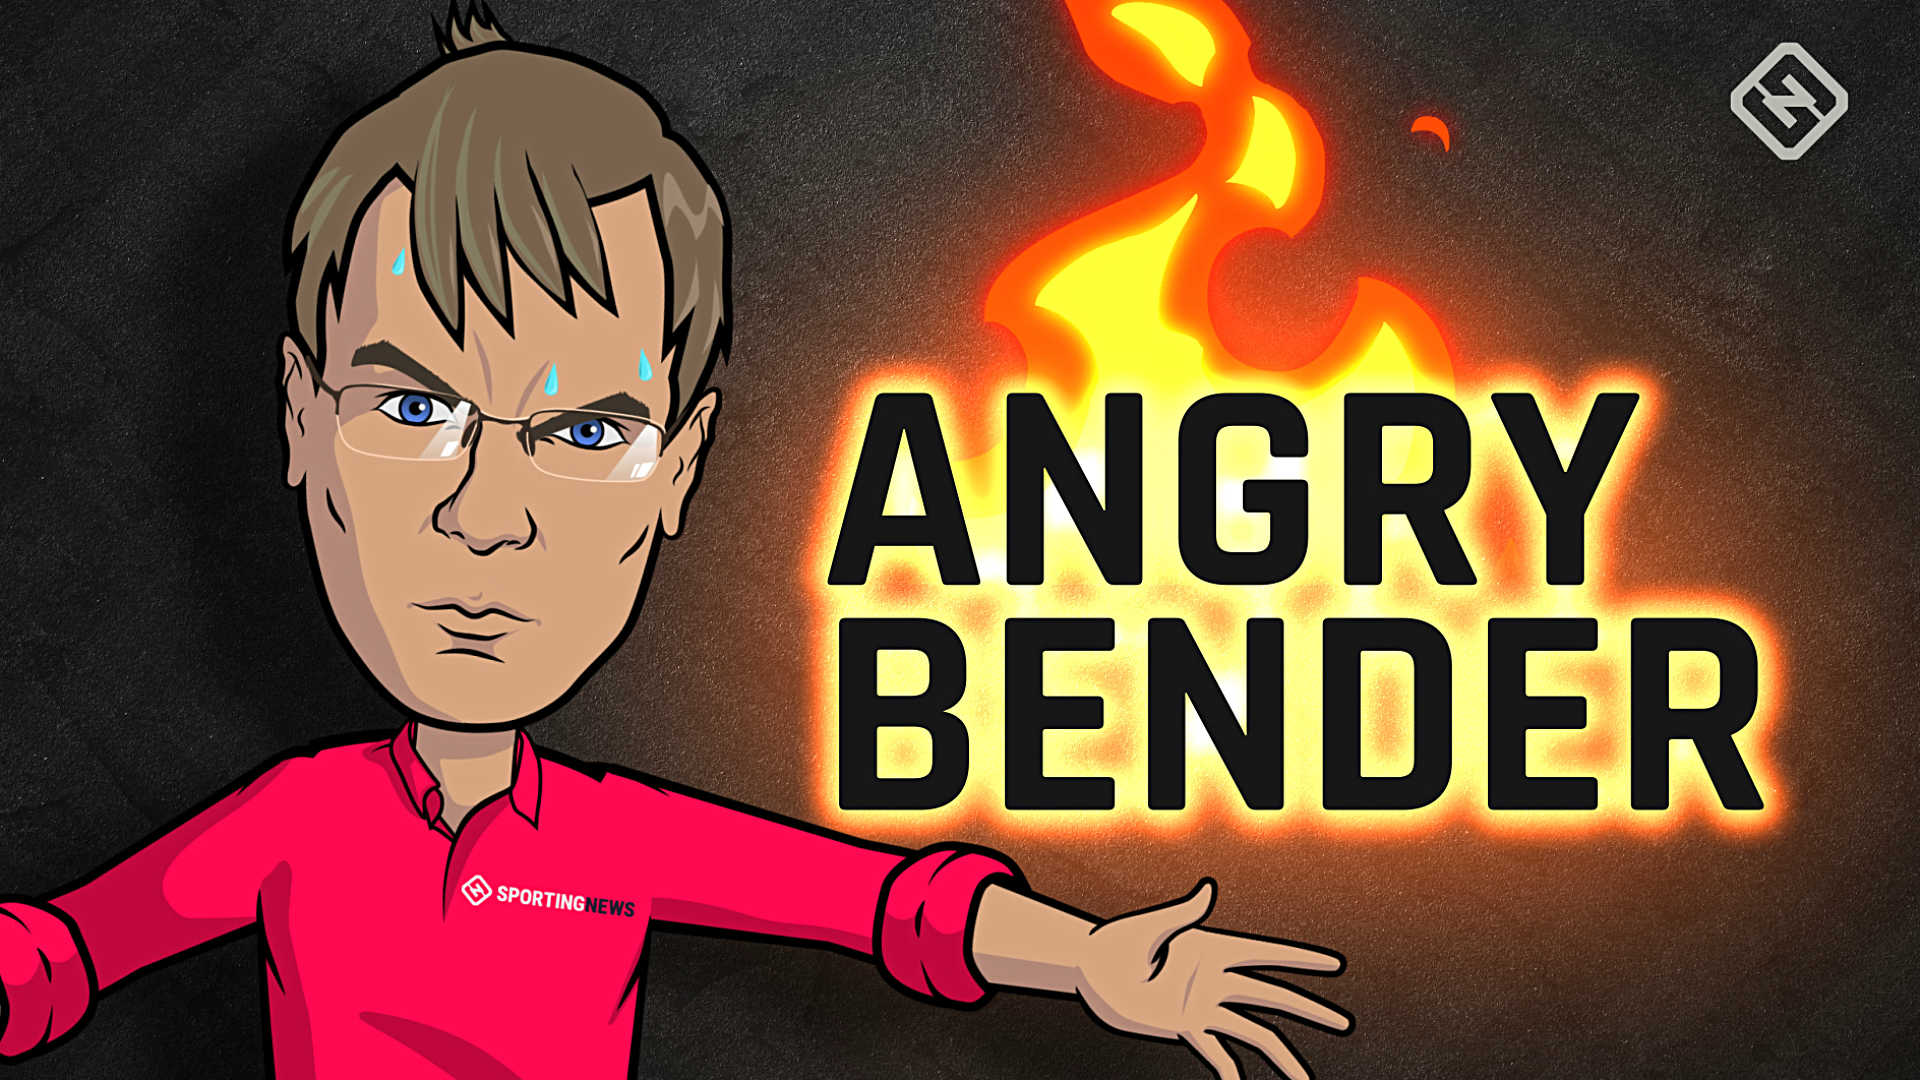 Angry Bender: Why two-loss chaos is built for losers